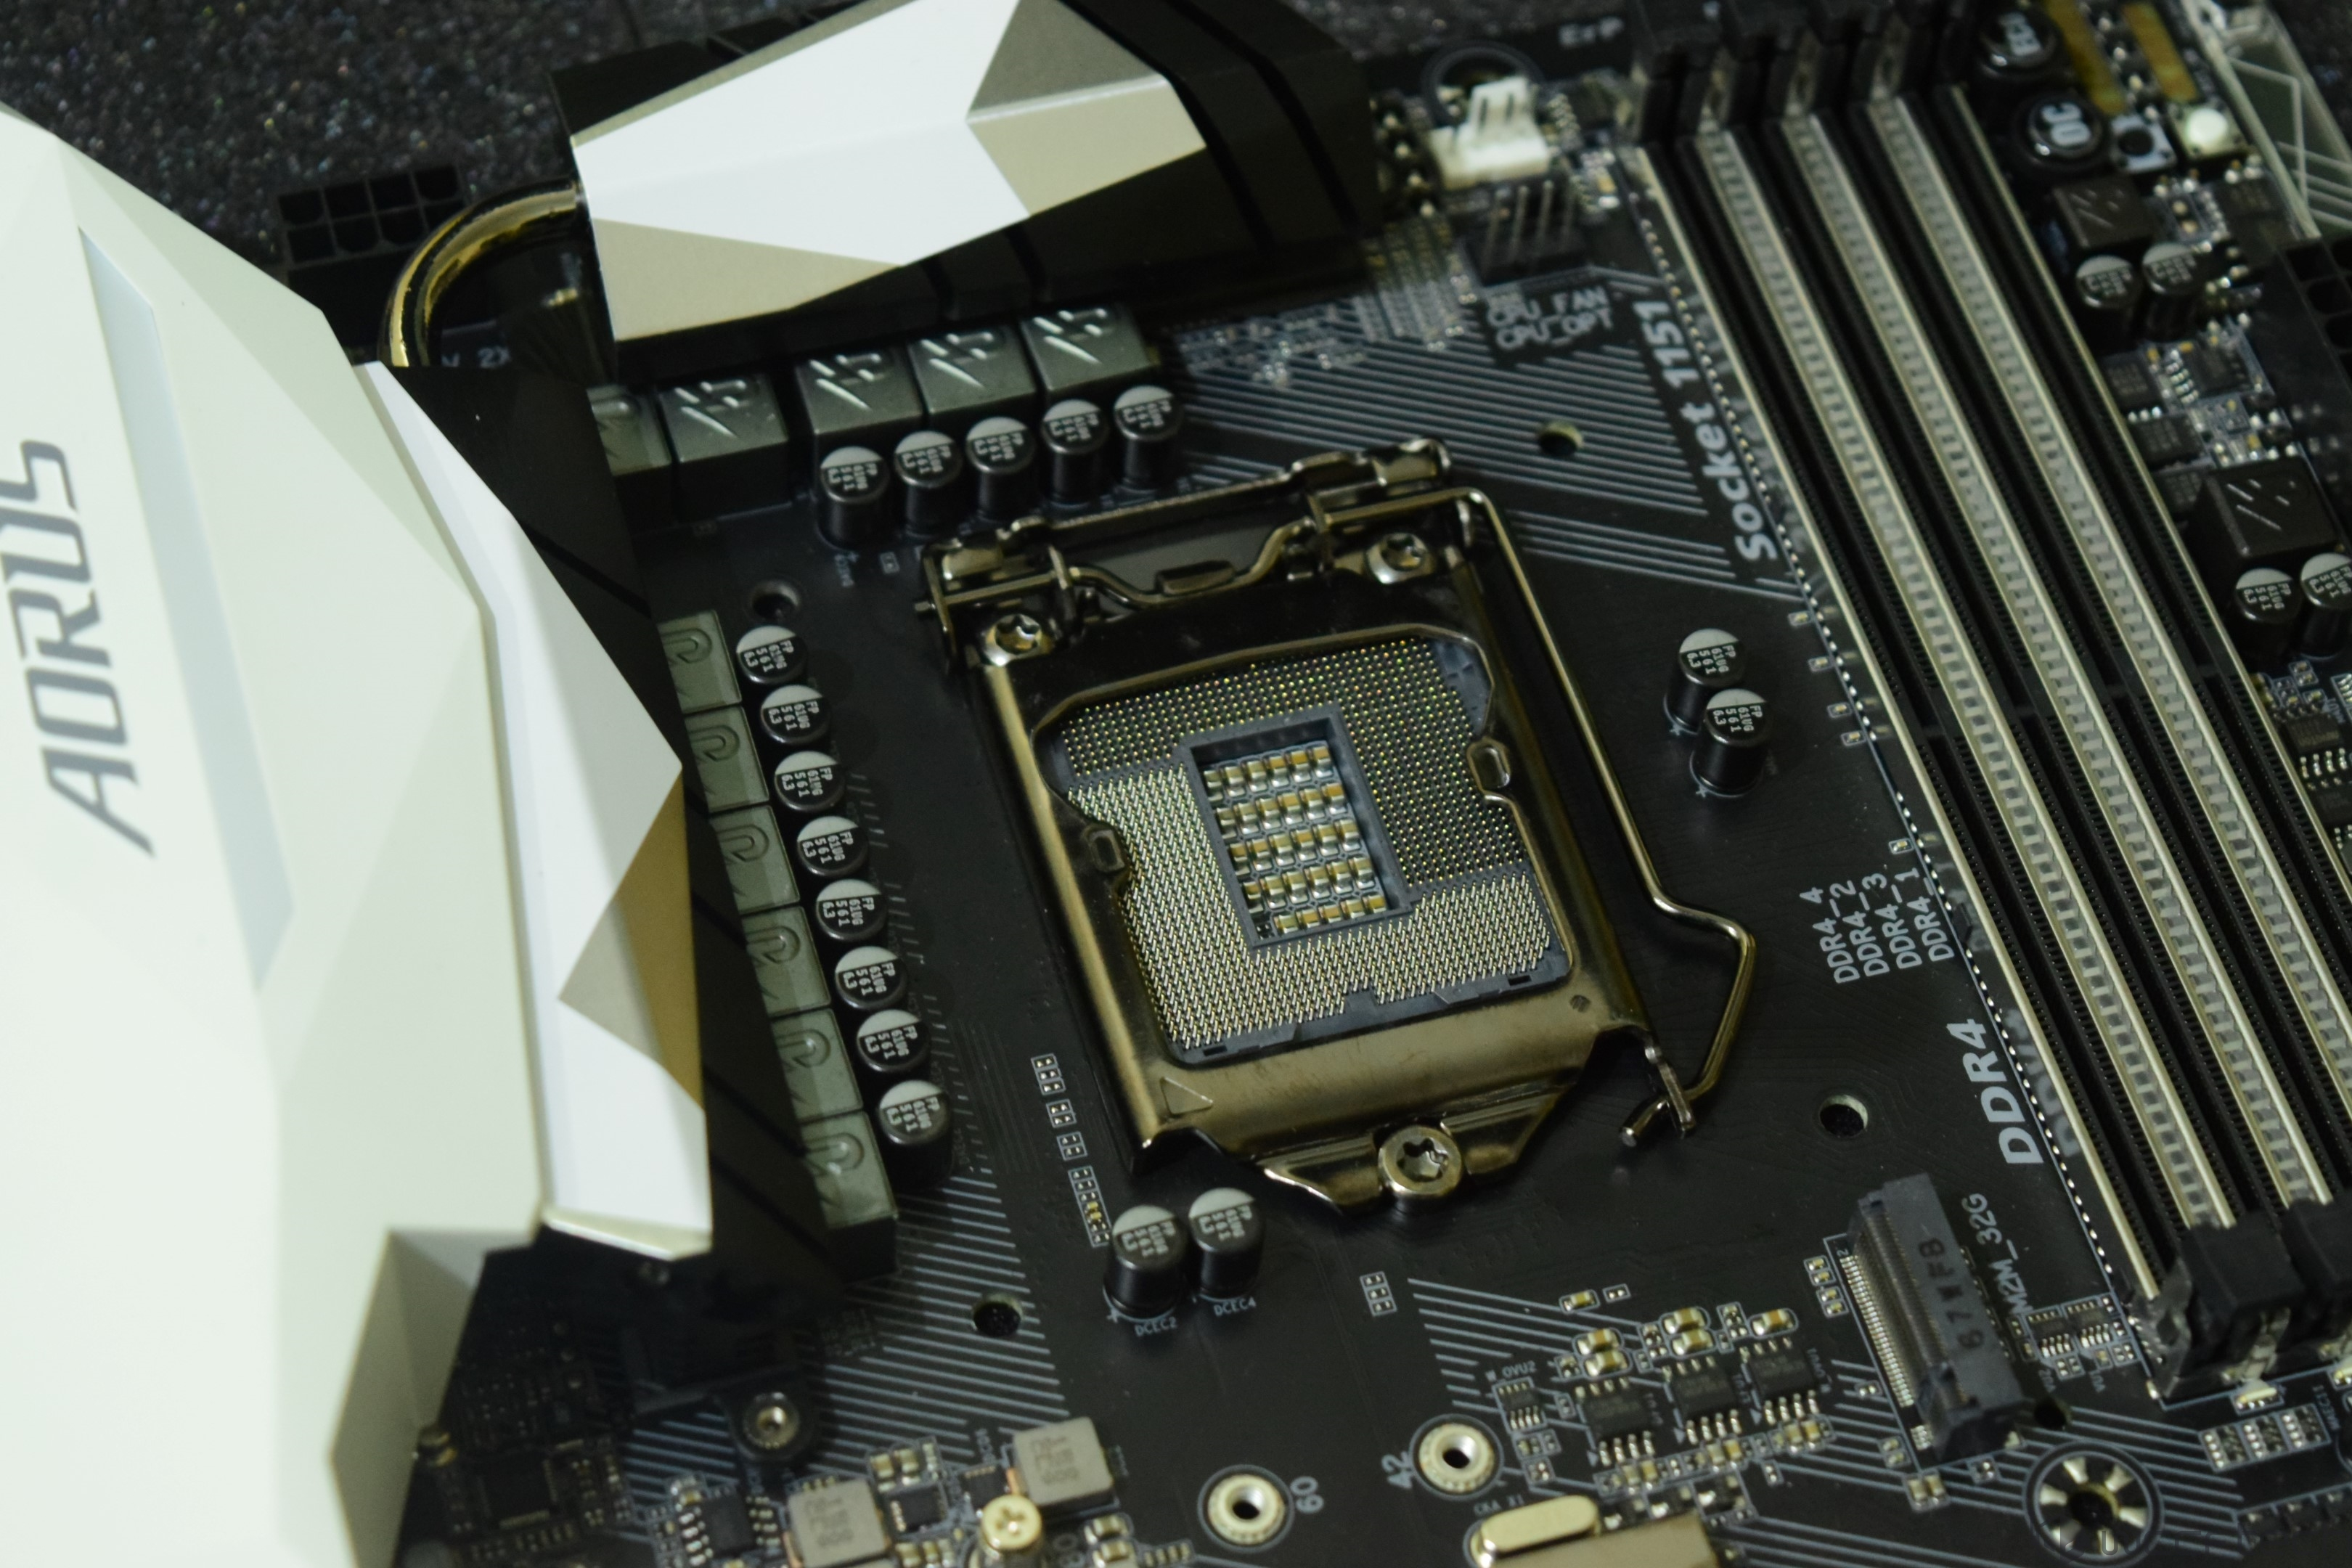 GIGABYTE AORUS Z270X-Gaming 7 LGA 1151 Motherboard Review – Test